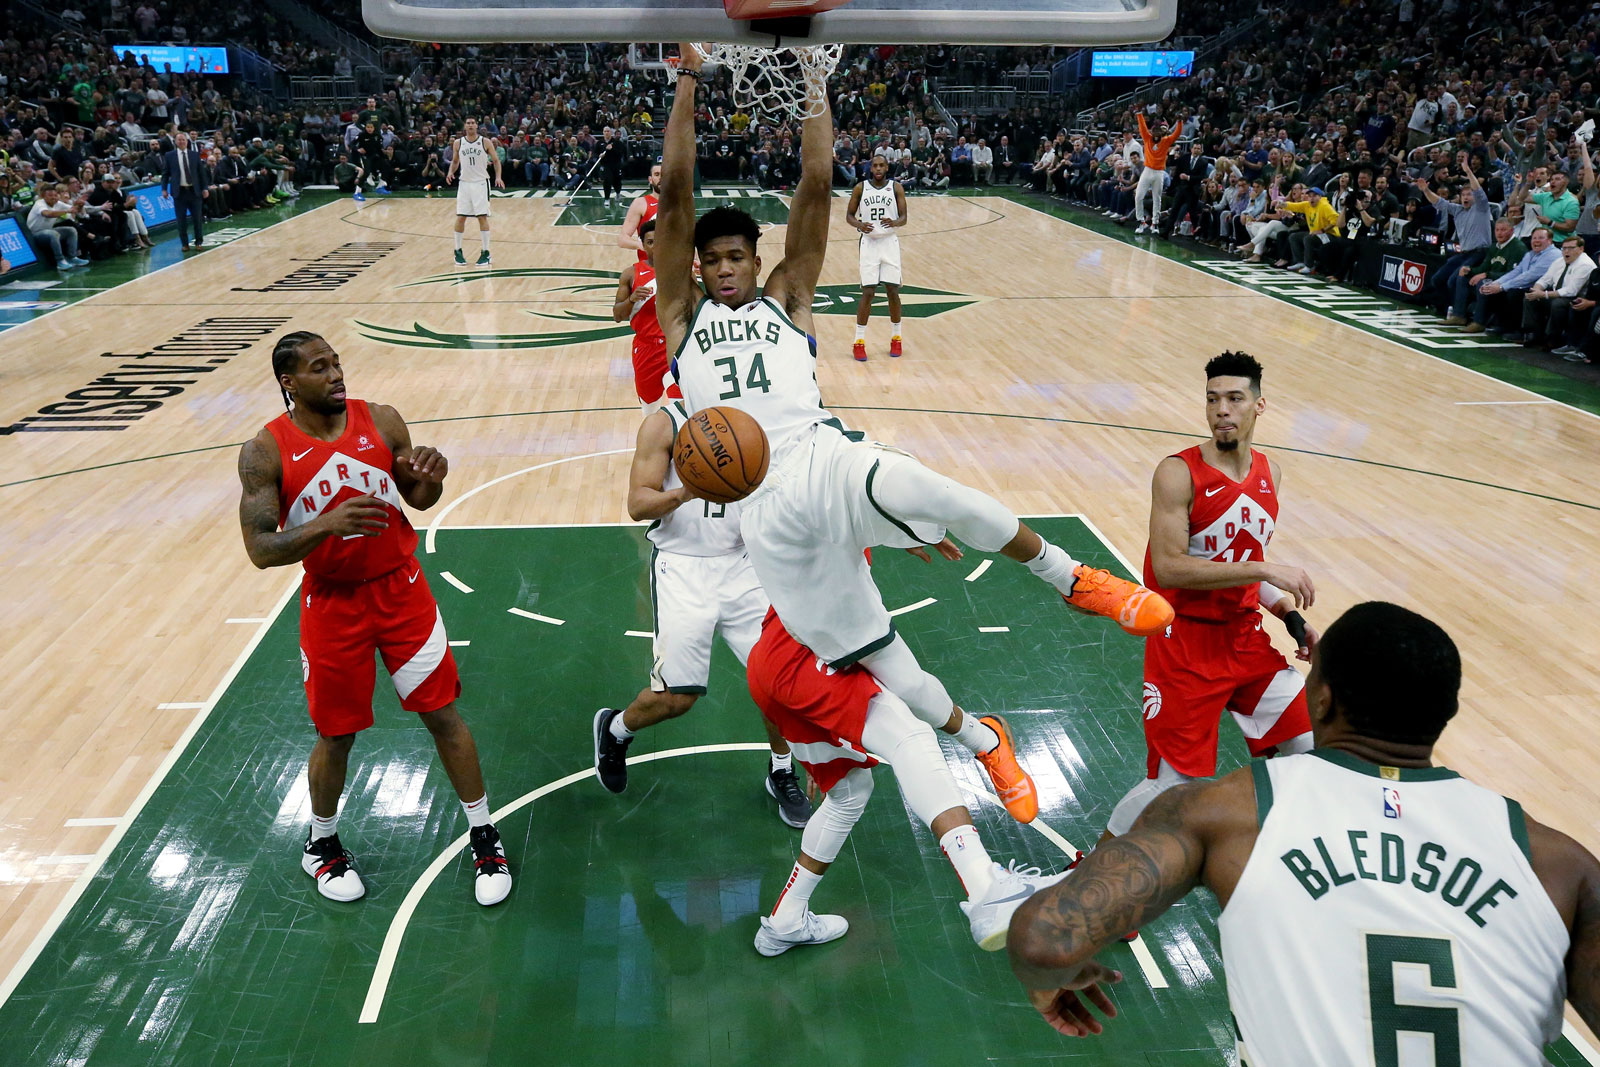 Giannis Antetokounmpo #34 of the Milwaukee Bucks dunks the ball in the first quarter against the Toronto Raptors during Game Five of the Eastern Conference Finals of the 2019 NBA Playoffs at the Fiserv Forum on May 23, 2019 in Milwaukee, Wisconsin.